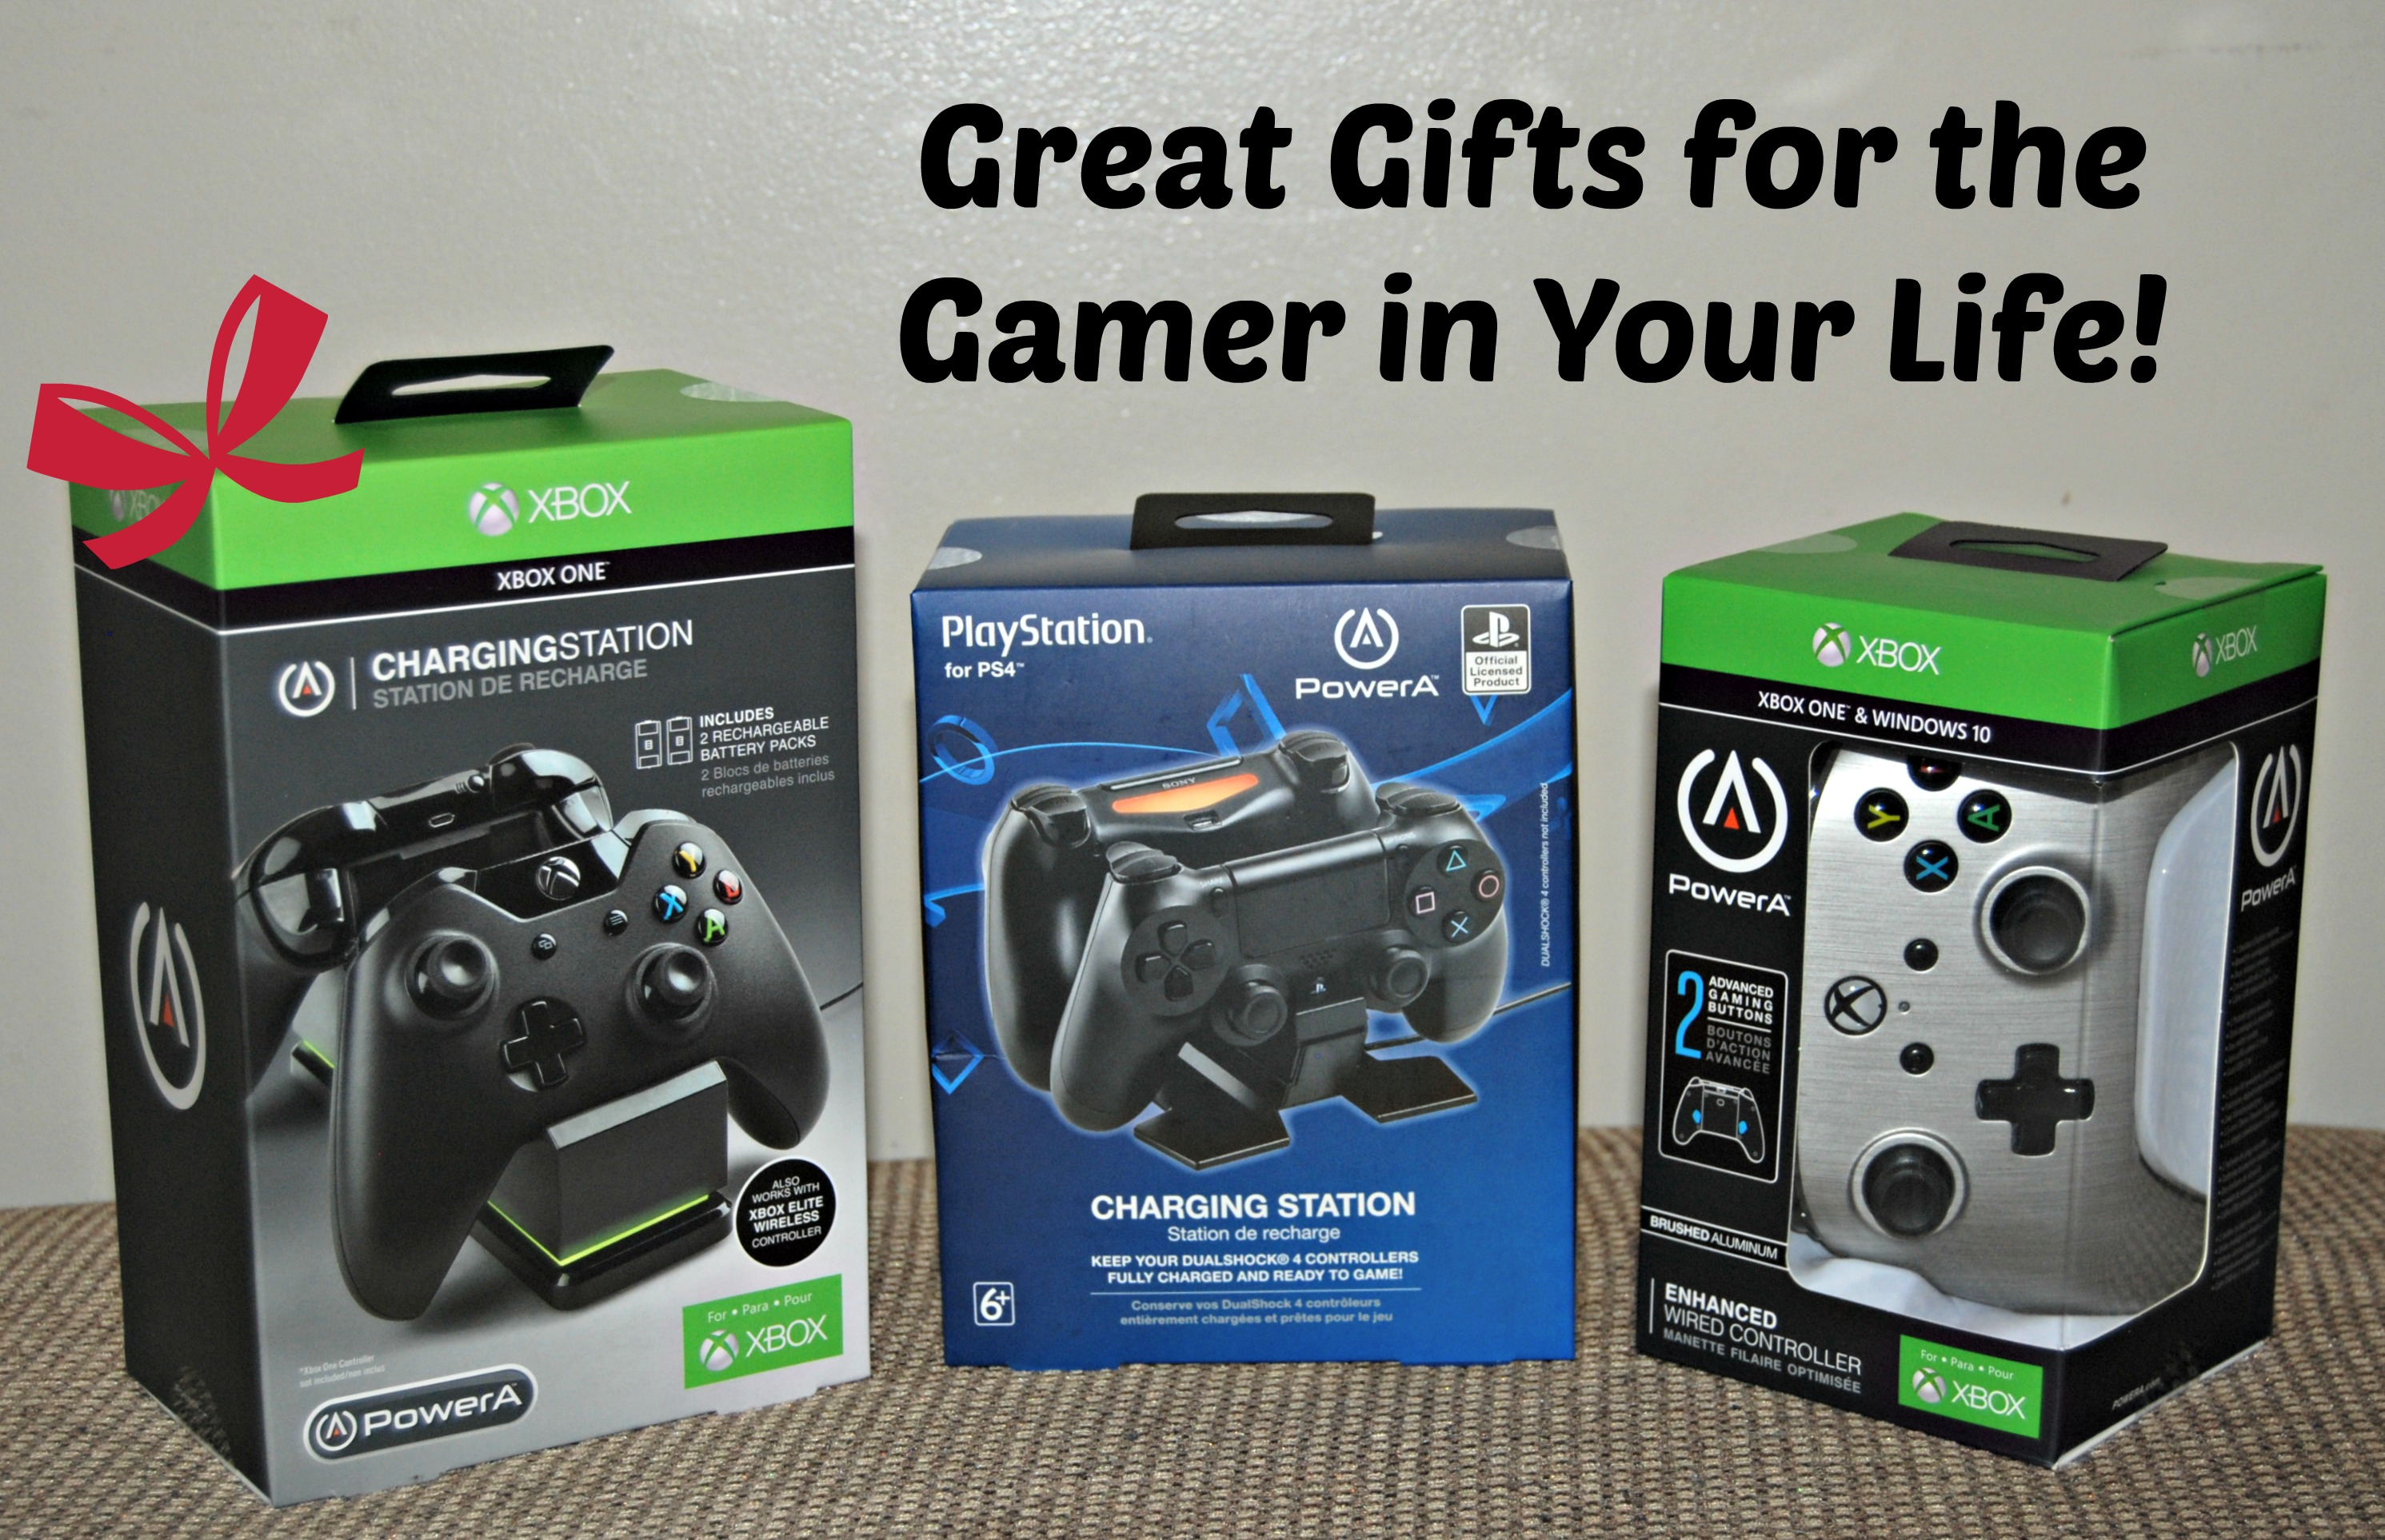 Great Gifts for The Gamer In Your Life from PowerA - Naturally Cracked